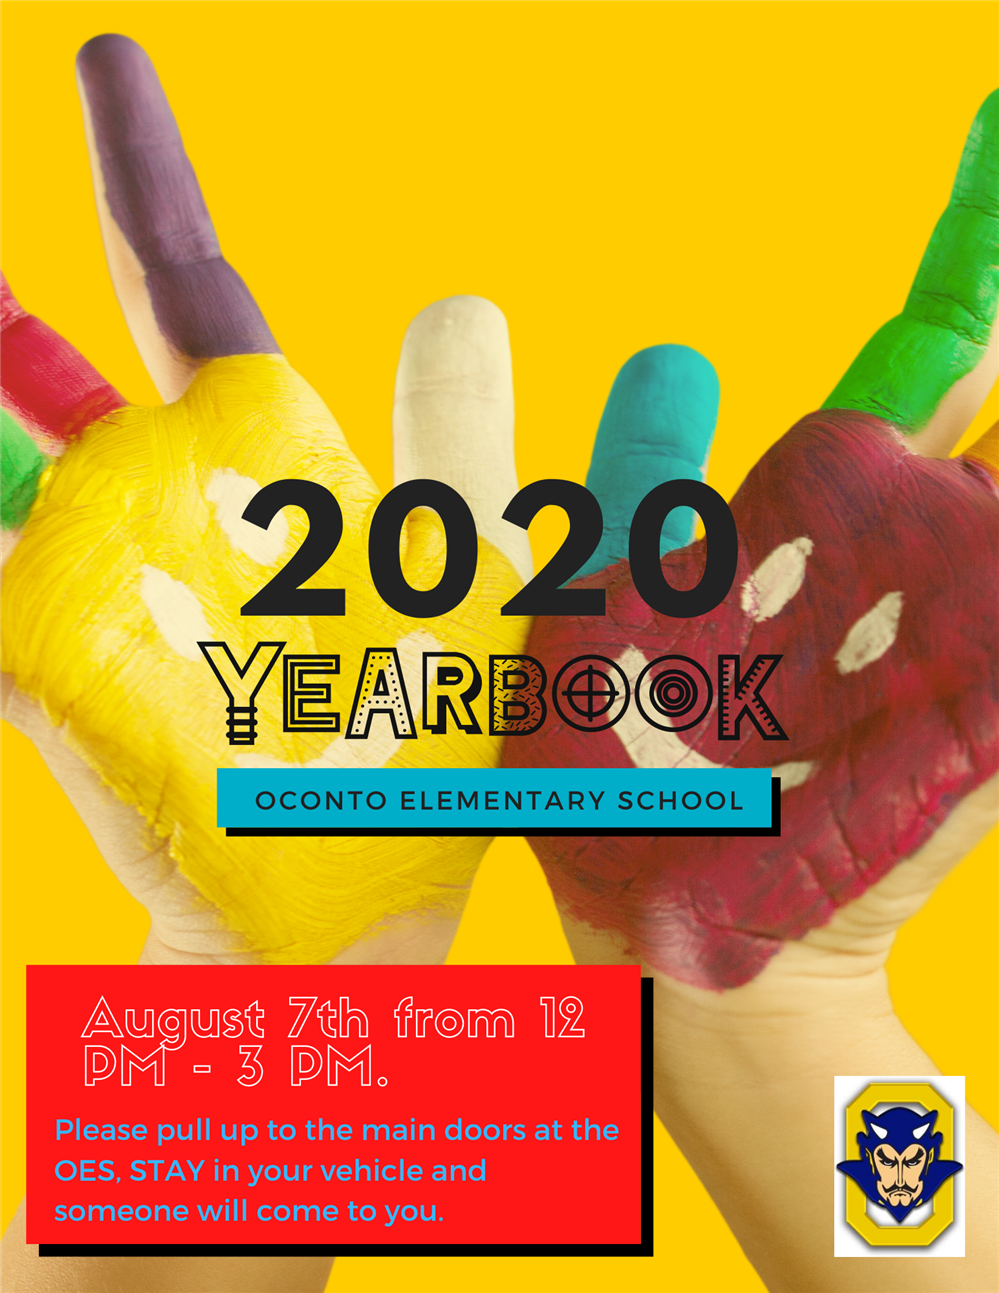 OES YEARBOOK 2020 DISTRIBUTION UPDATE